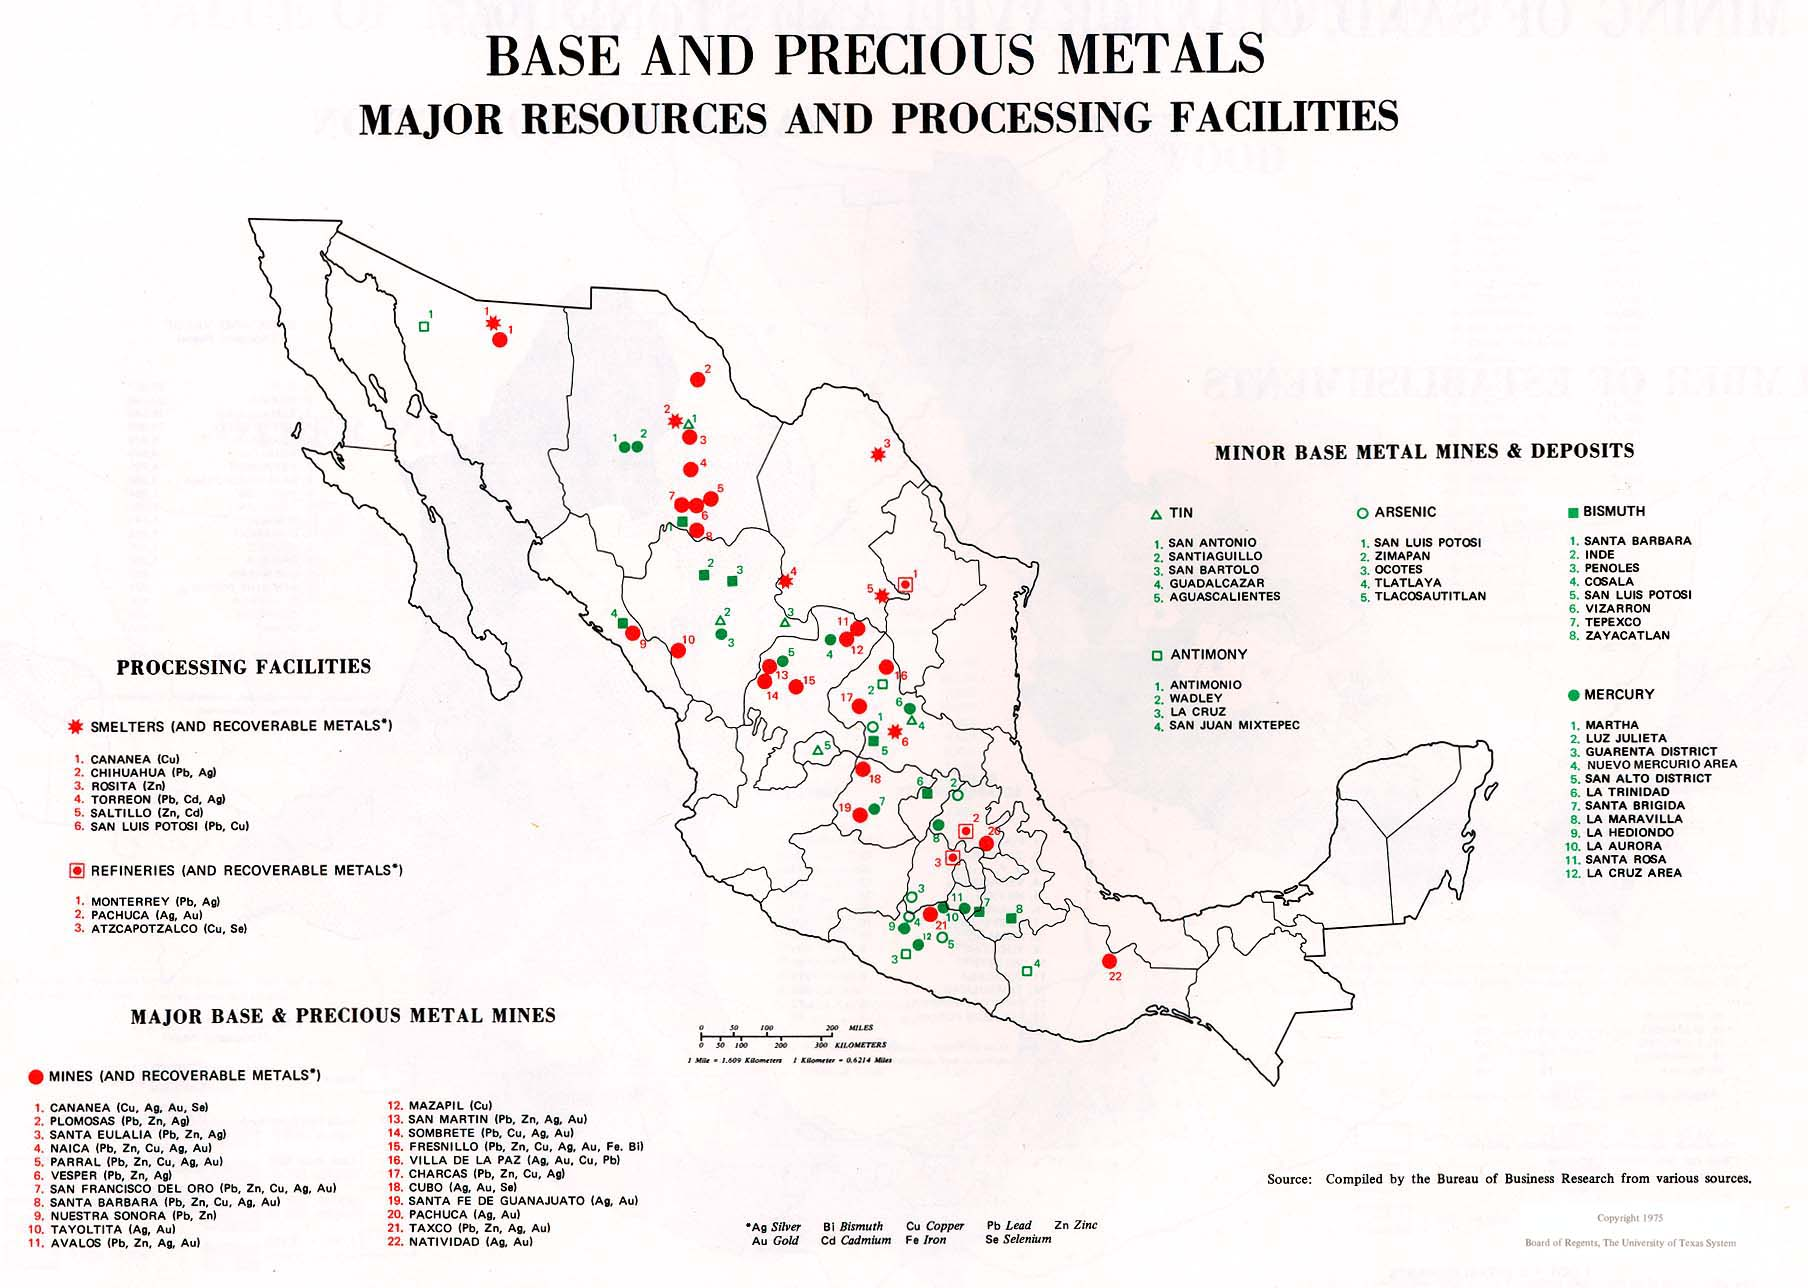 Major Resources and Processing Facilities for Base and Precious Metals in Mexico 1975